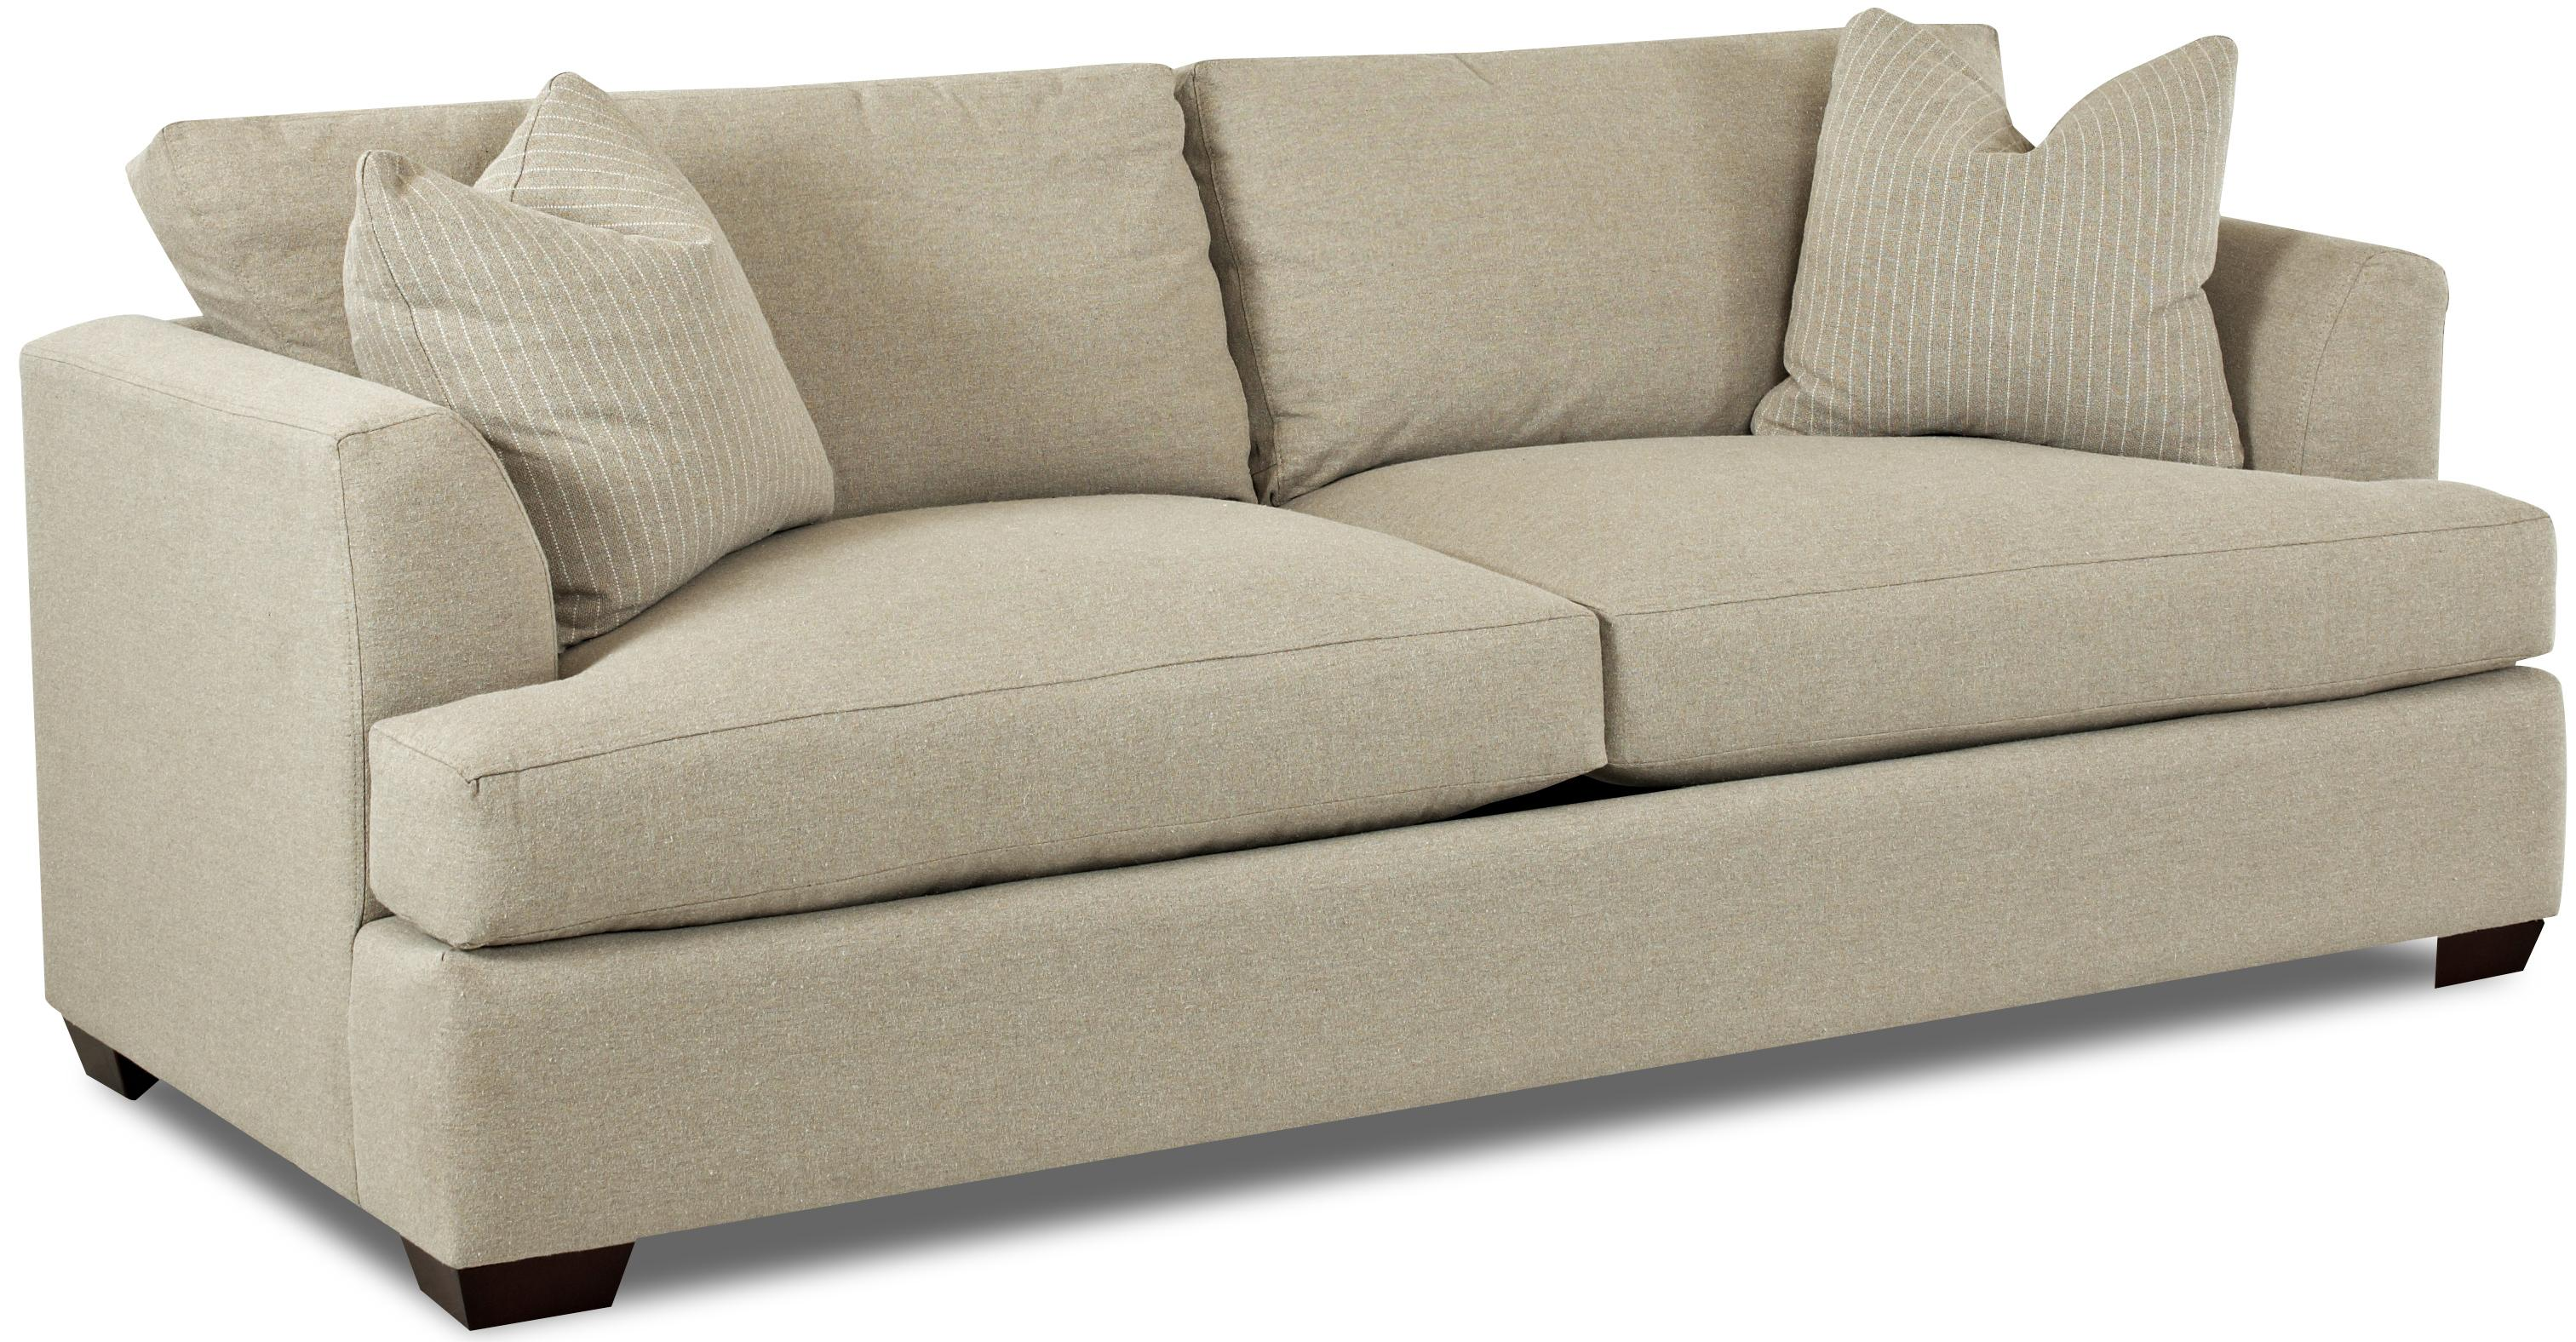 Contemporary Sofa With Flared Track Arms By Klaussner Wolf And Gardiner Wolf Furniture